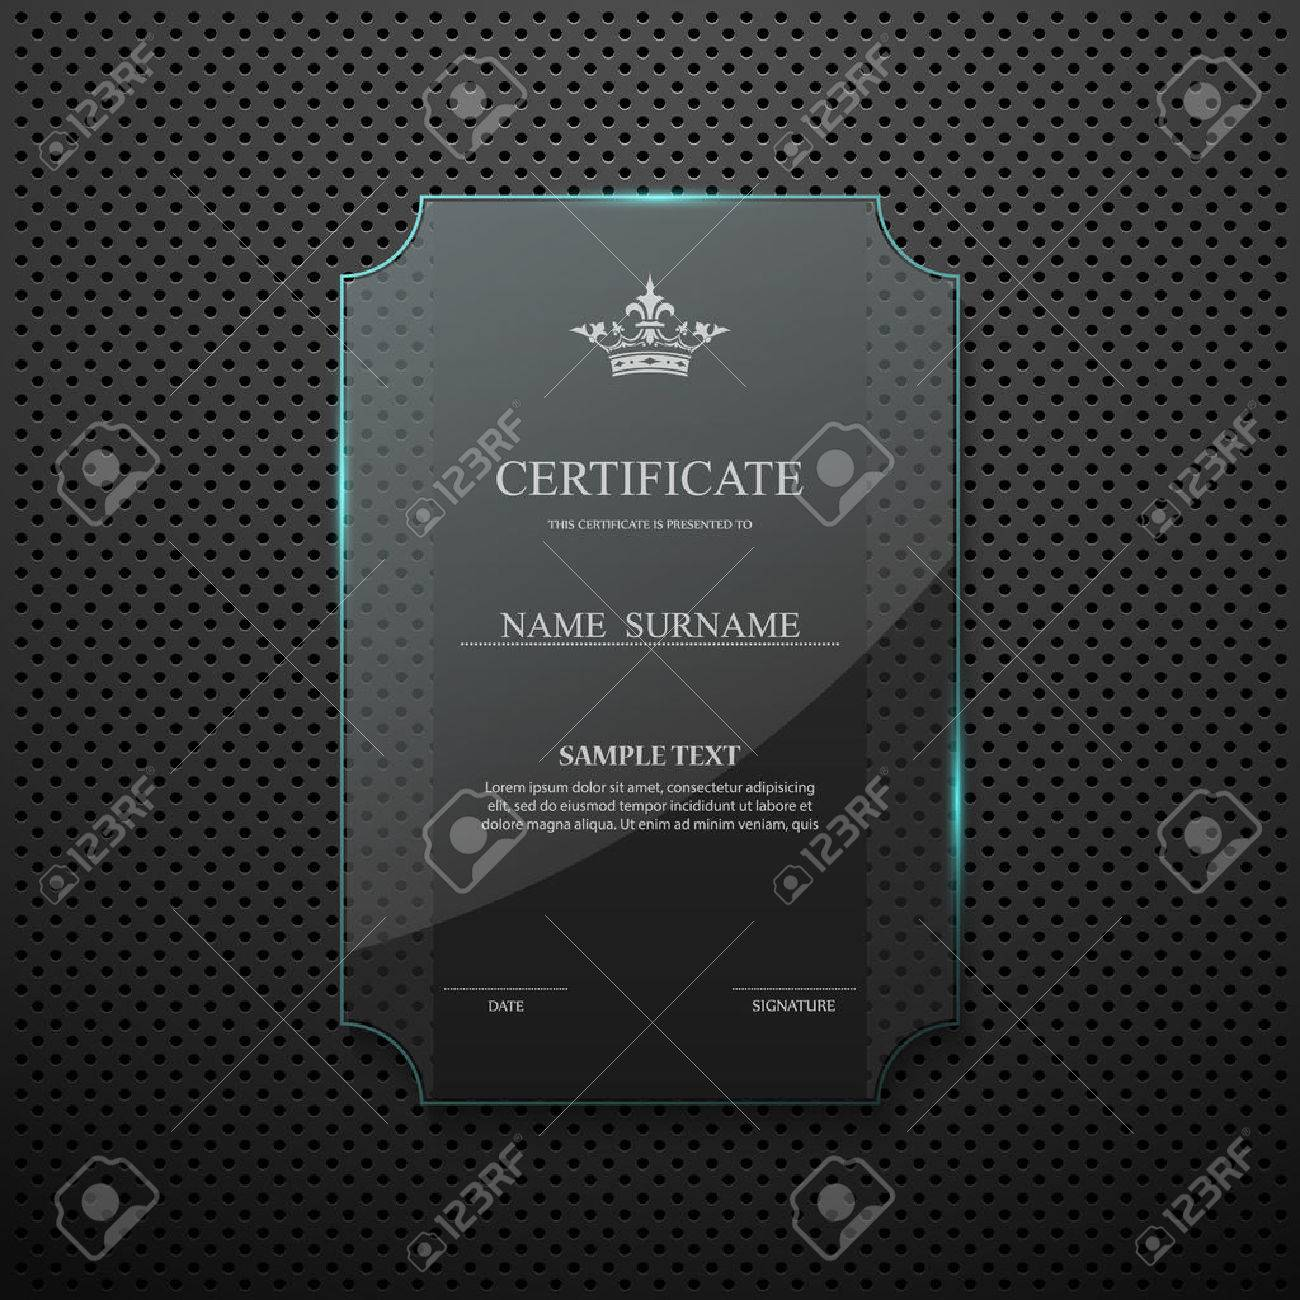 Certificate Design Template On Glass Frame Royalty Free Cliparts ...